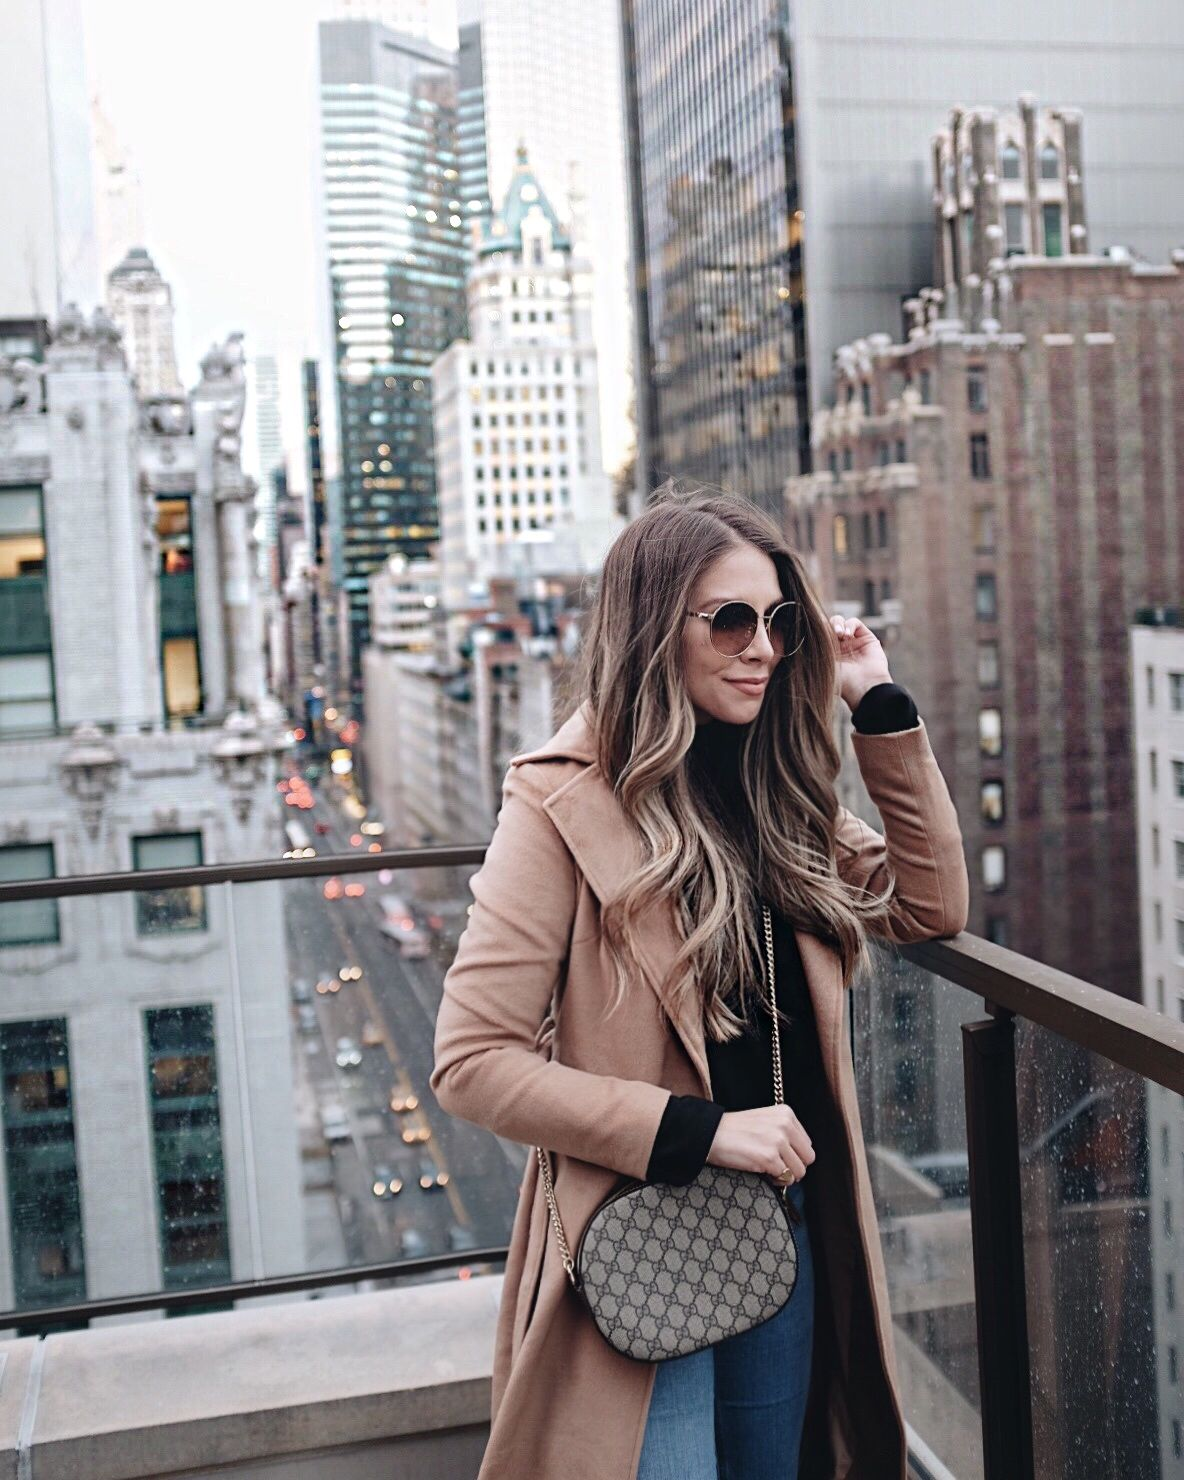 48 Hours In New York City The Teacher Diva A Dallas Fashion Blog Featuring Beauty Lifestyle New York Spring Outfits New York Outfits Nyc Spring Outfits